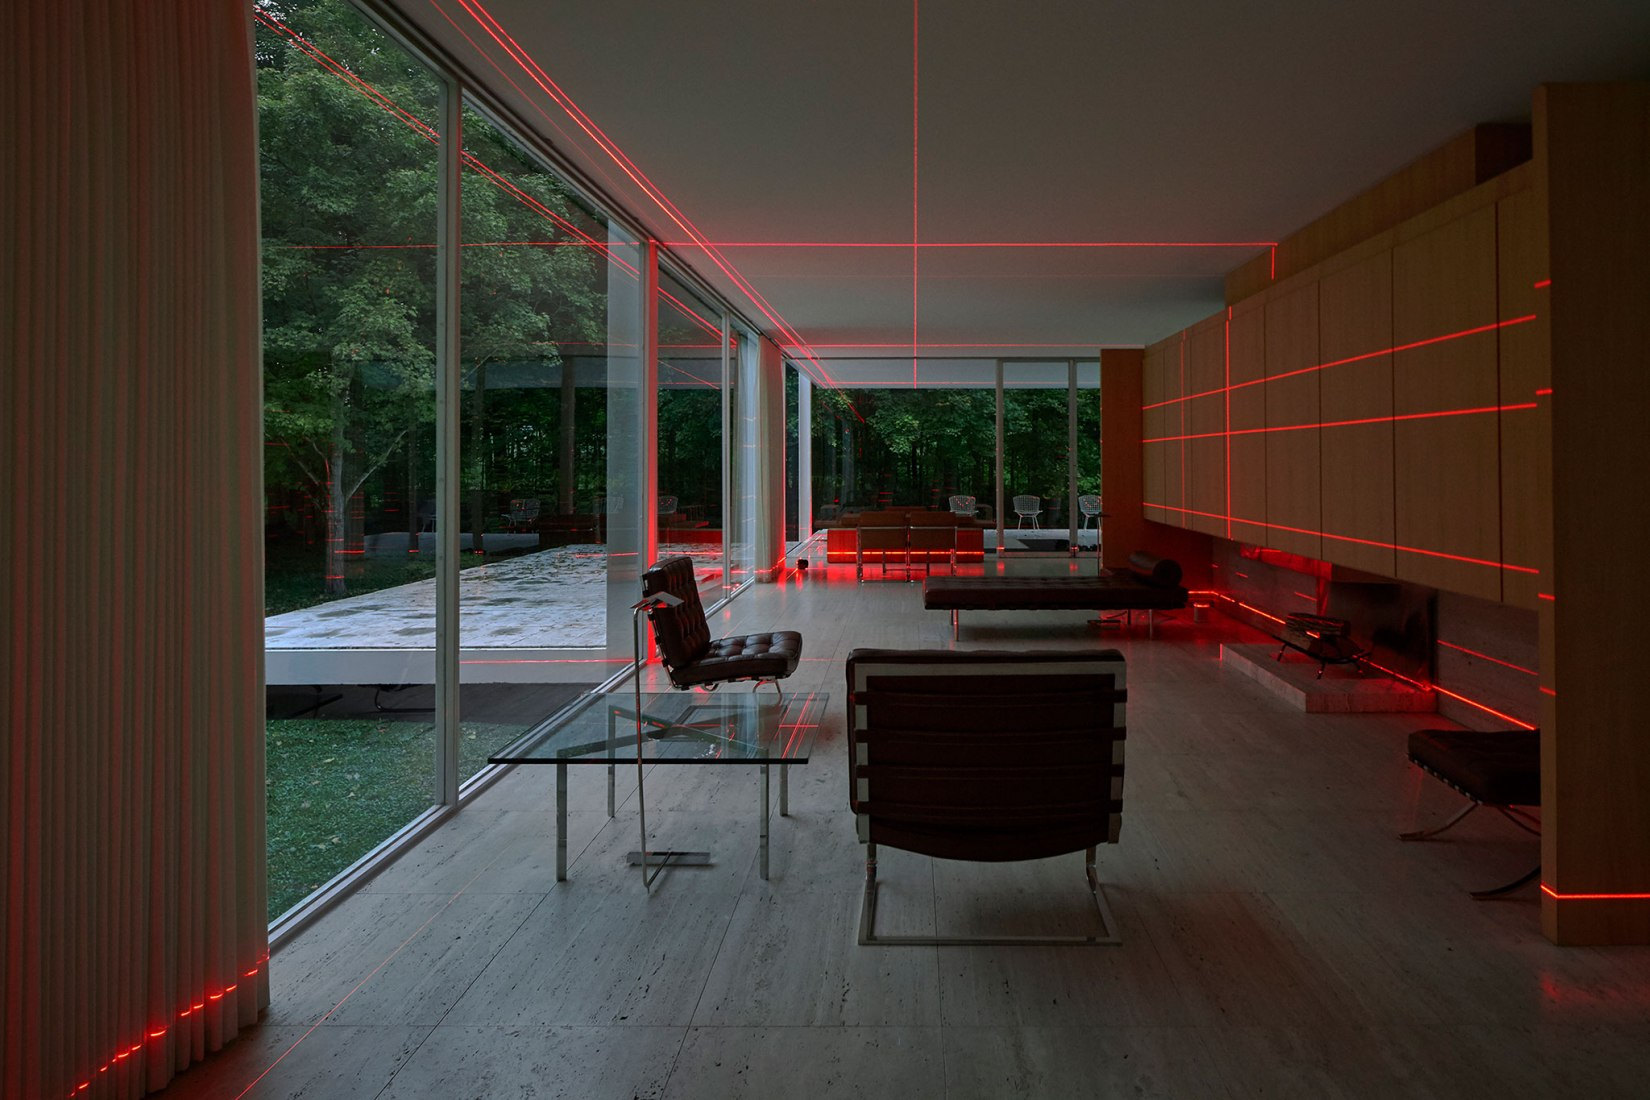 Geometry of Light at Farnsworth House by Luftwerk & Iker Gil. Photograph by Kate Joyce.